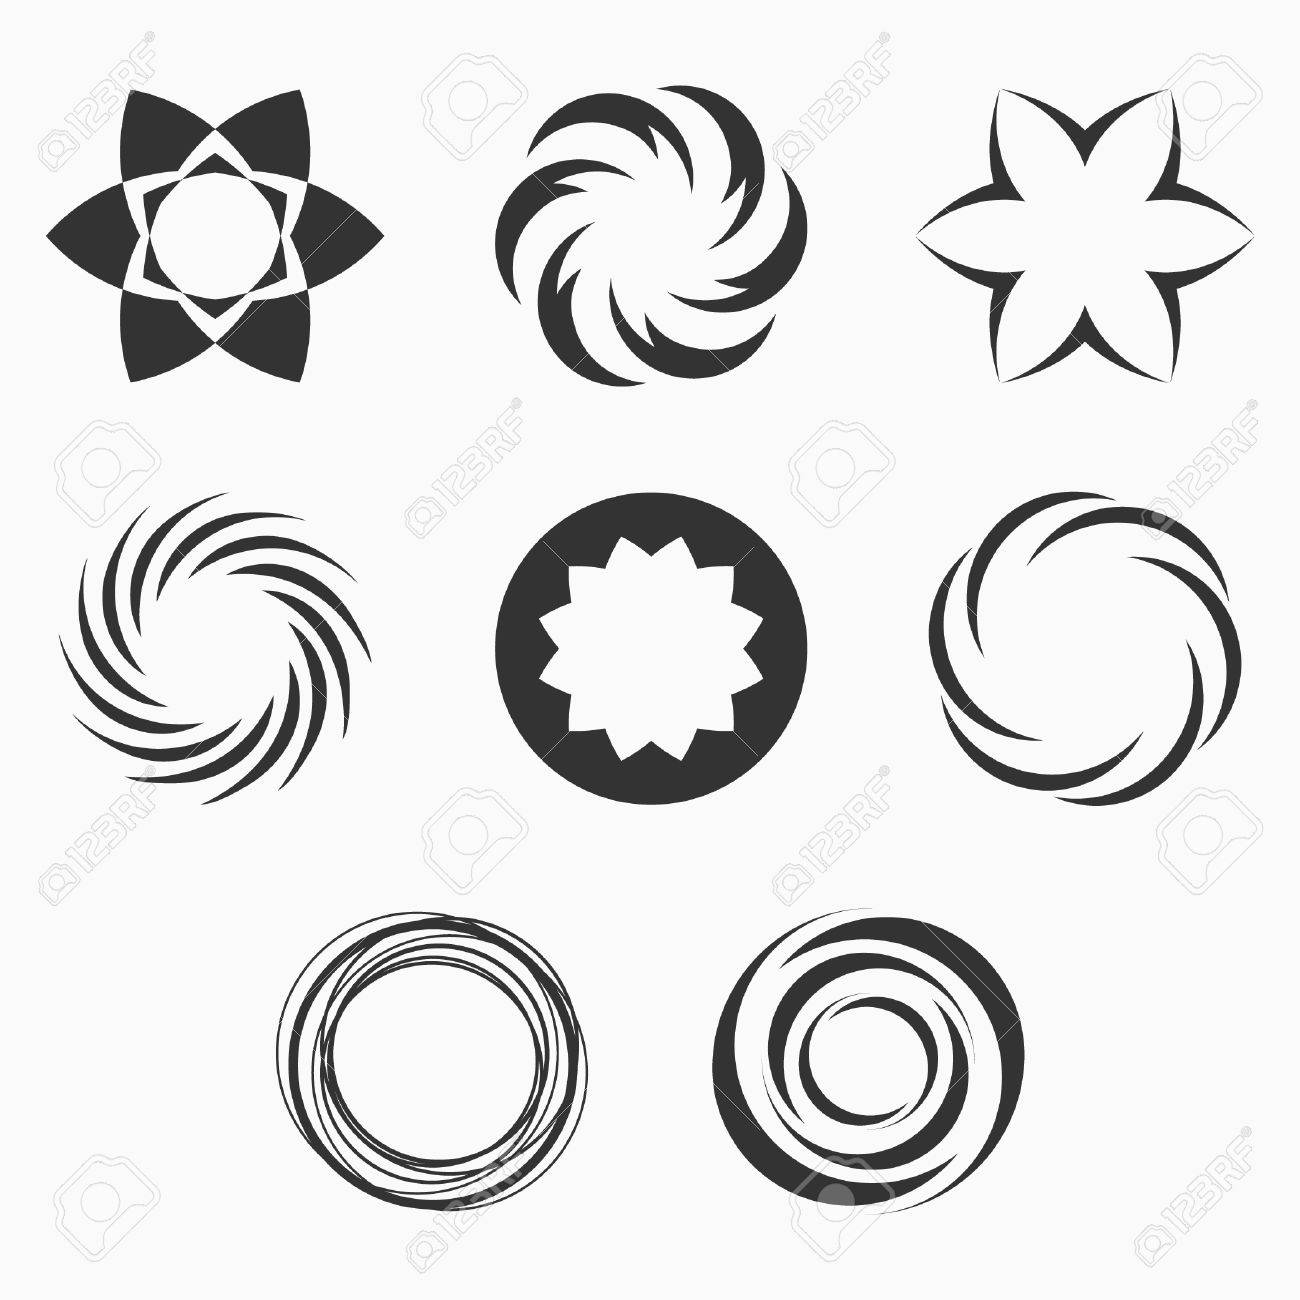 Symbols for light dolgular abstract geometric shapes symbols for your design symmetric biocorpaavc